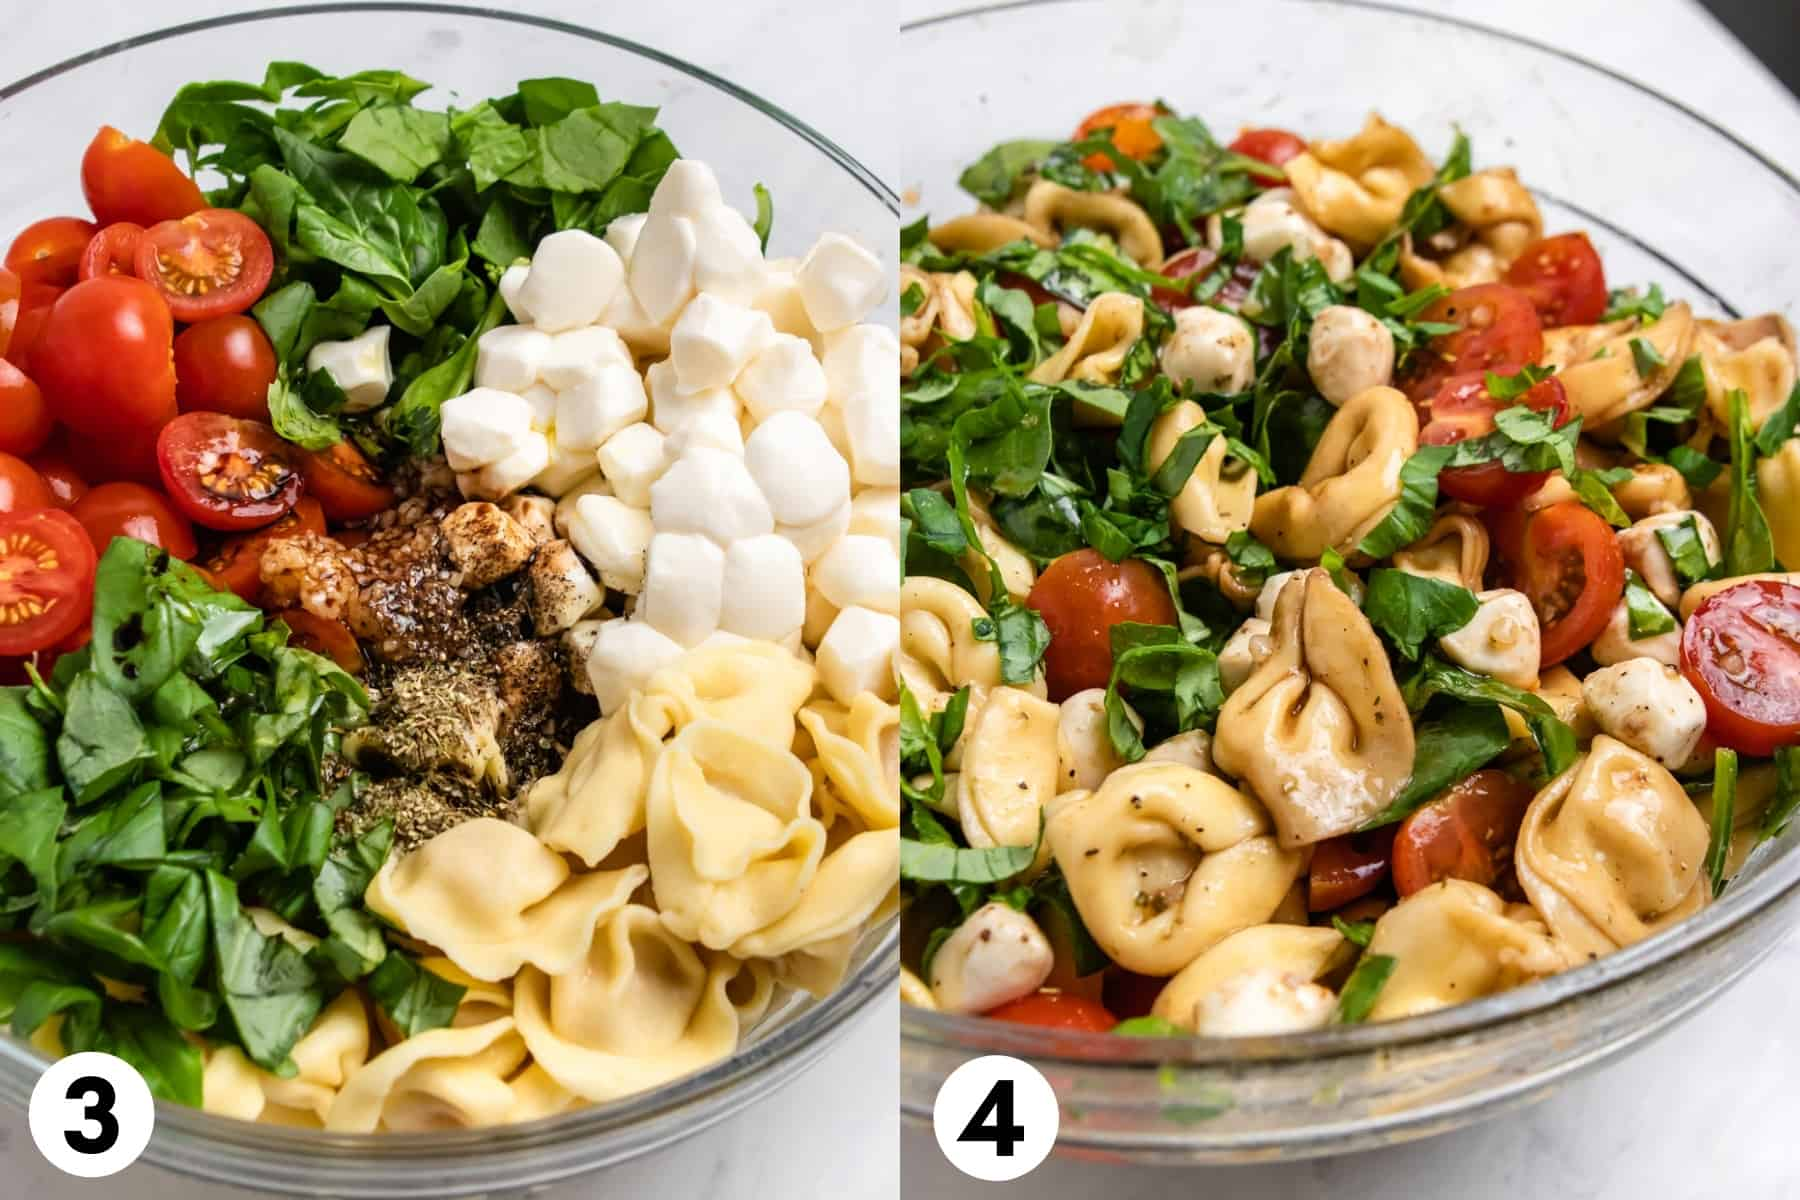 Pasta salad ingredients in glass bowl before tossed in first image and after tossed in second image.